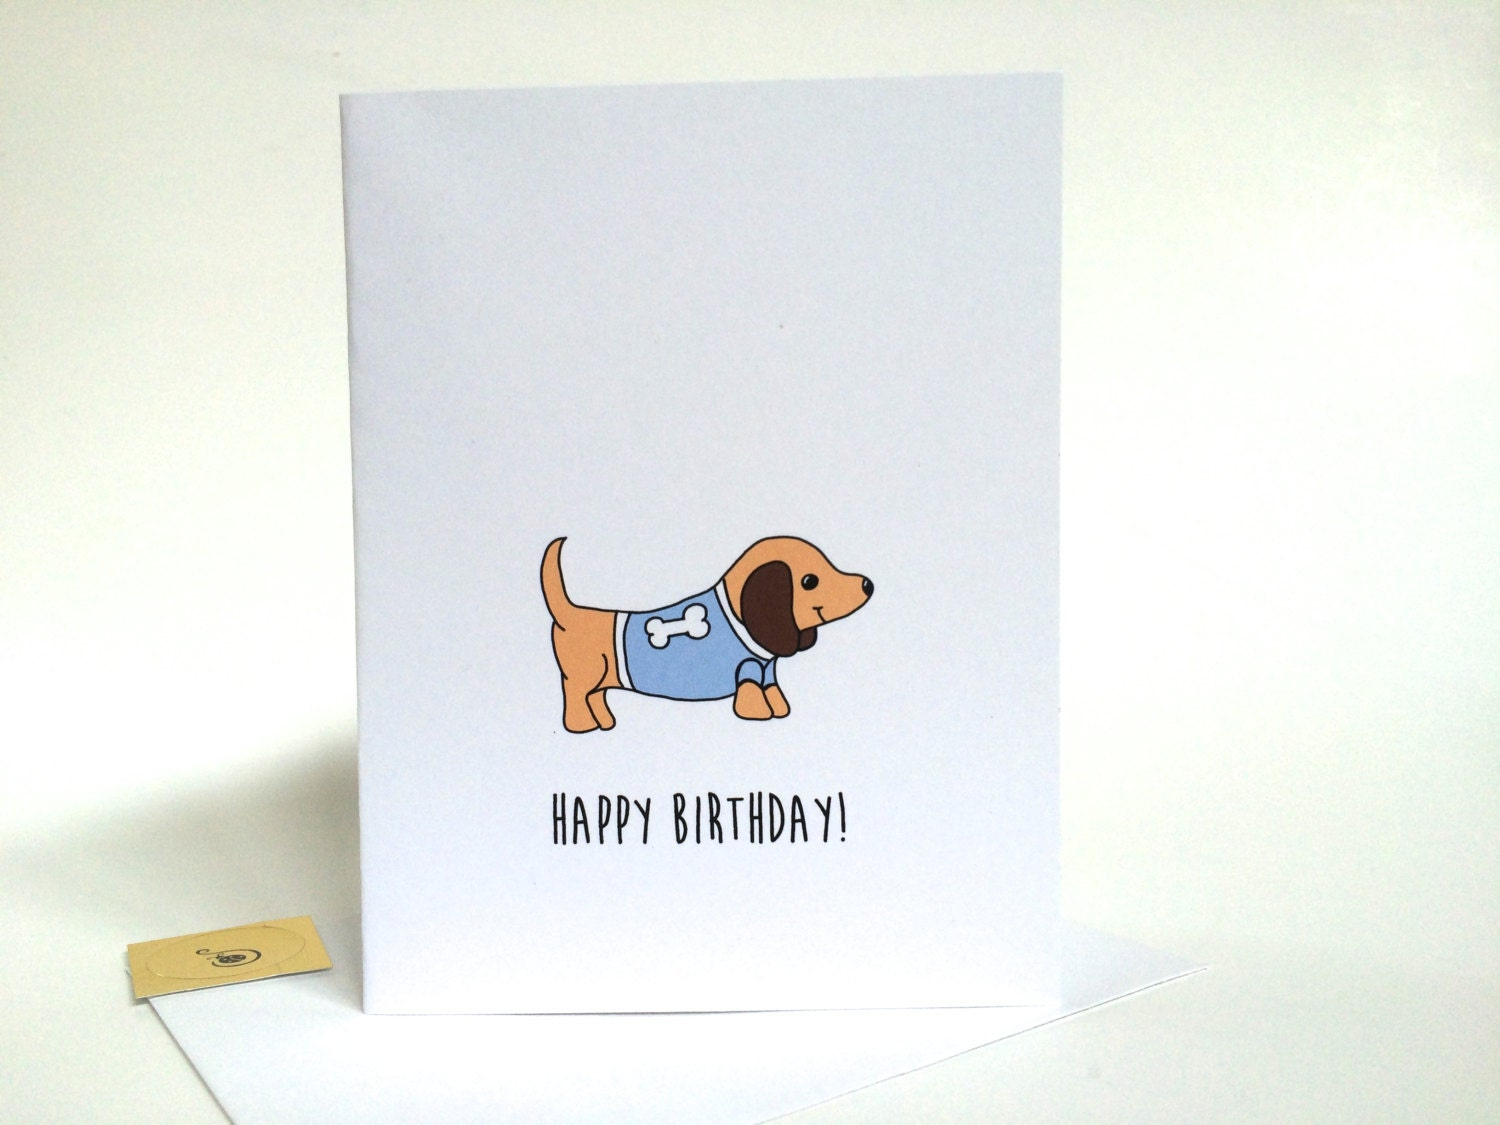 Dachshund birthday card birthday card from the dog made on dachshund birthday card birthday card from the dog made on recycled paper comes with envelope and seal bookmarktalkfo Images